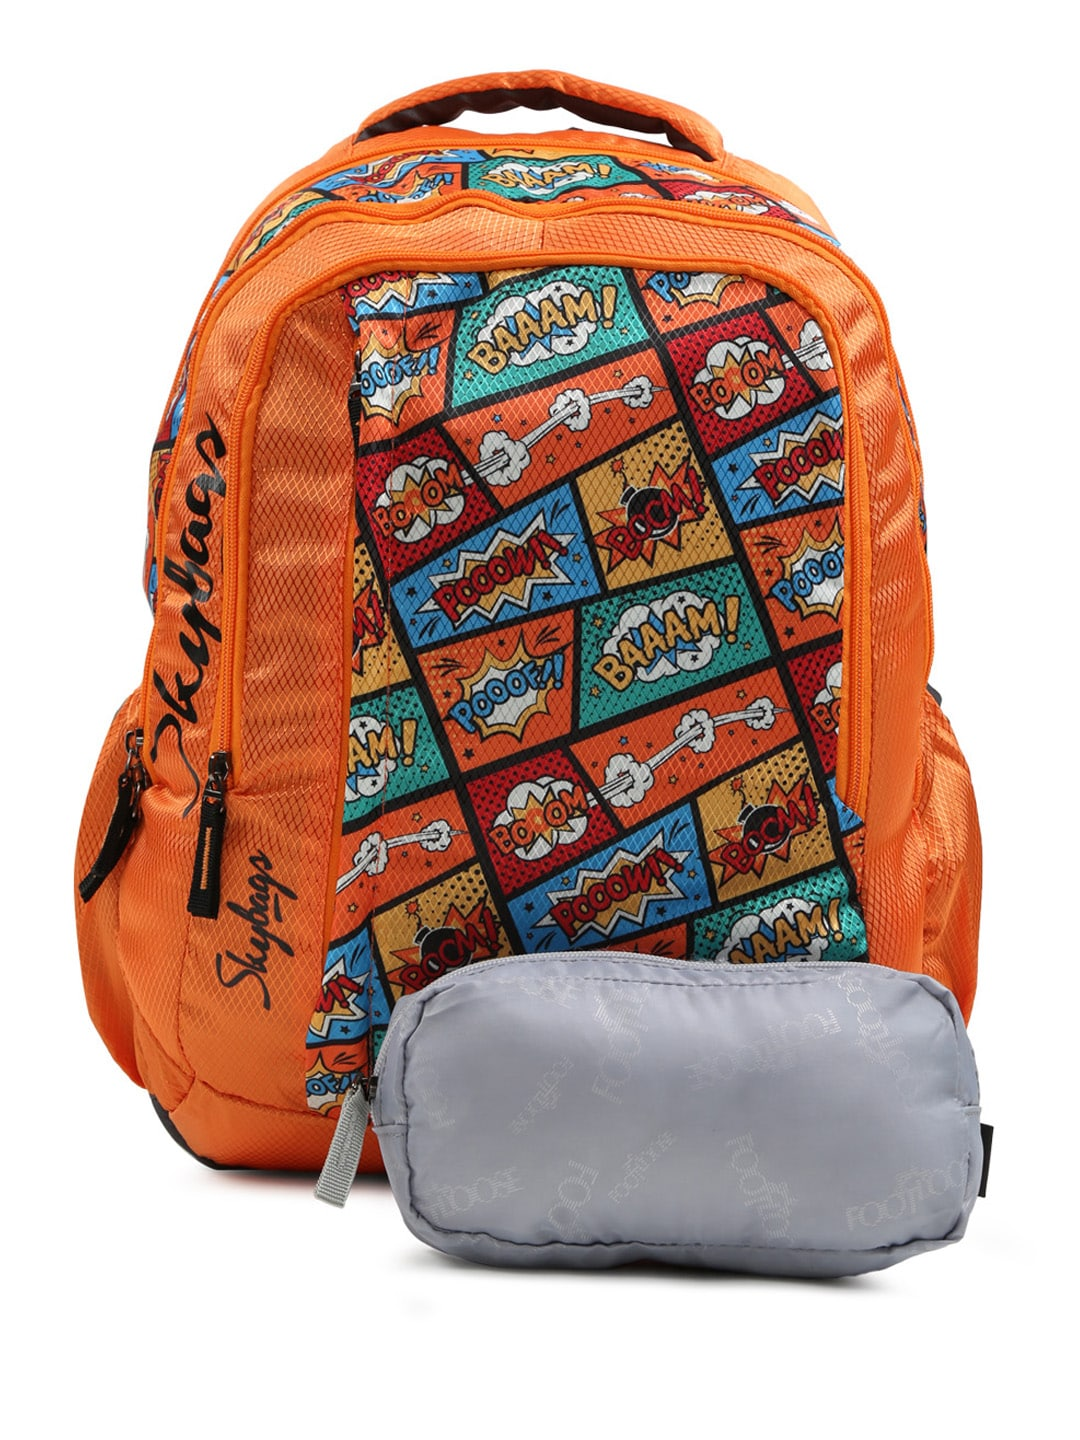 Skybags - Buy Skybags Online at Best Price in India  60c0cfa7ec7de